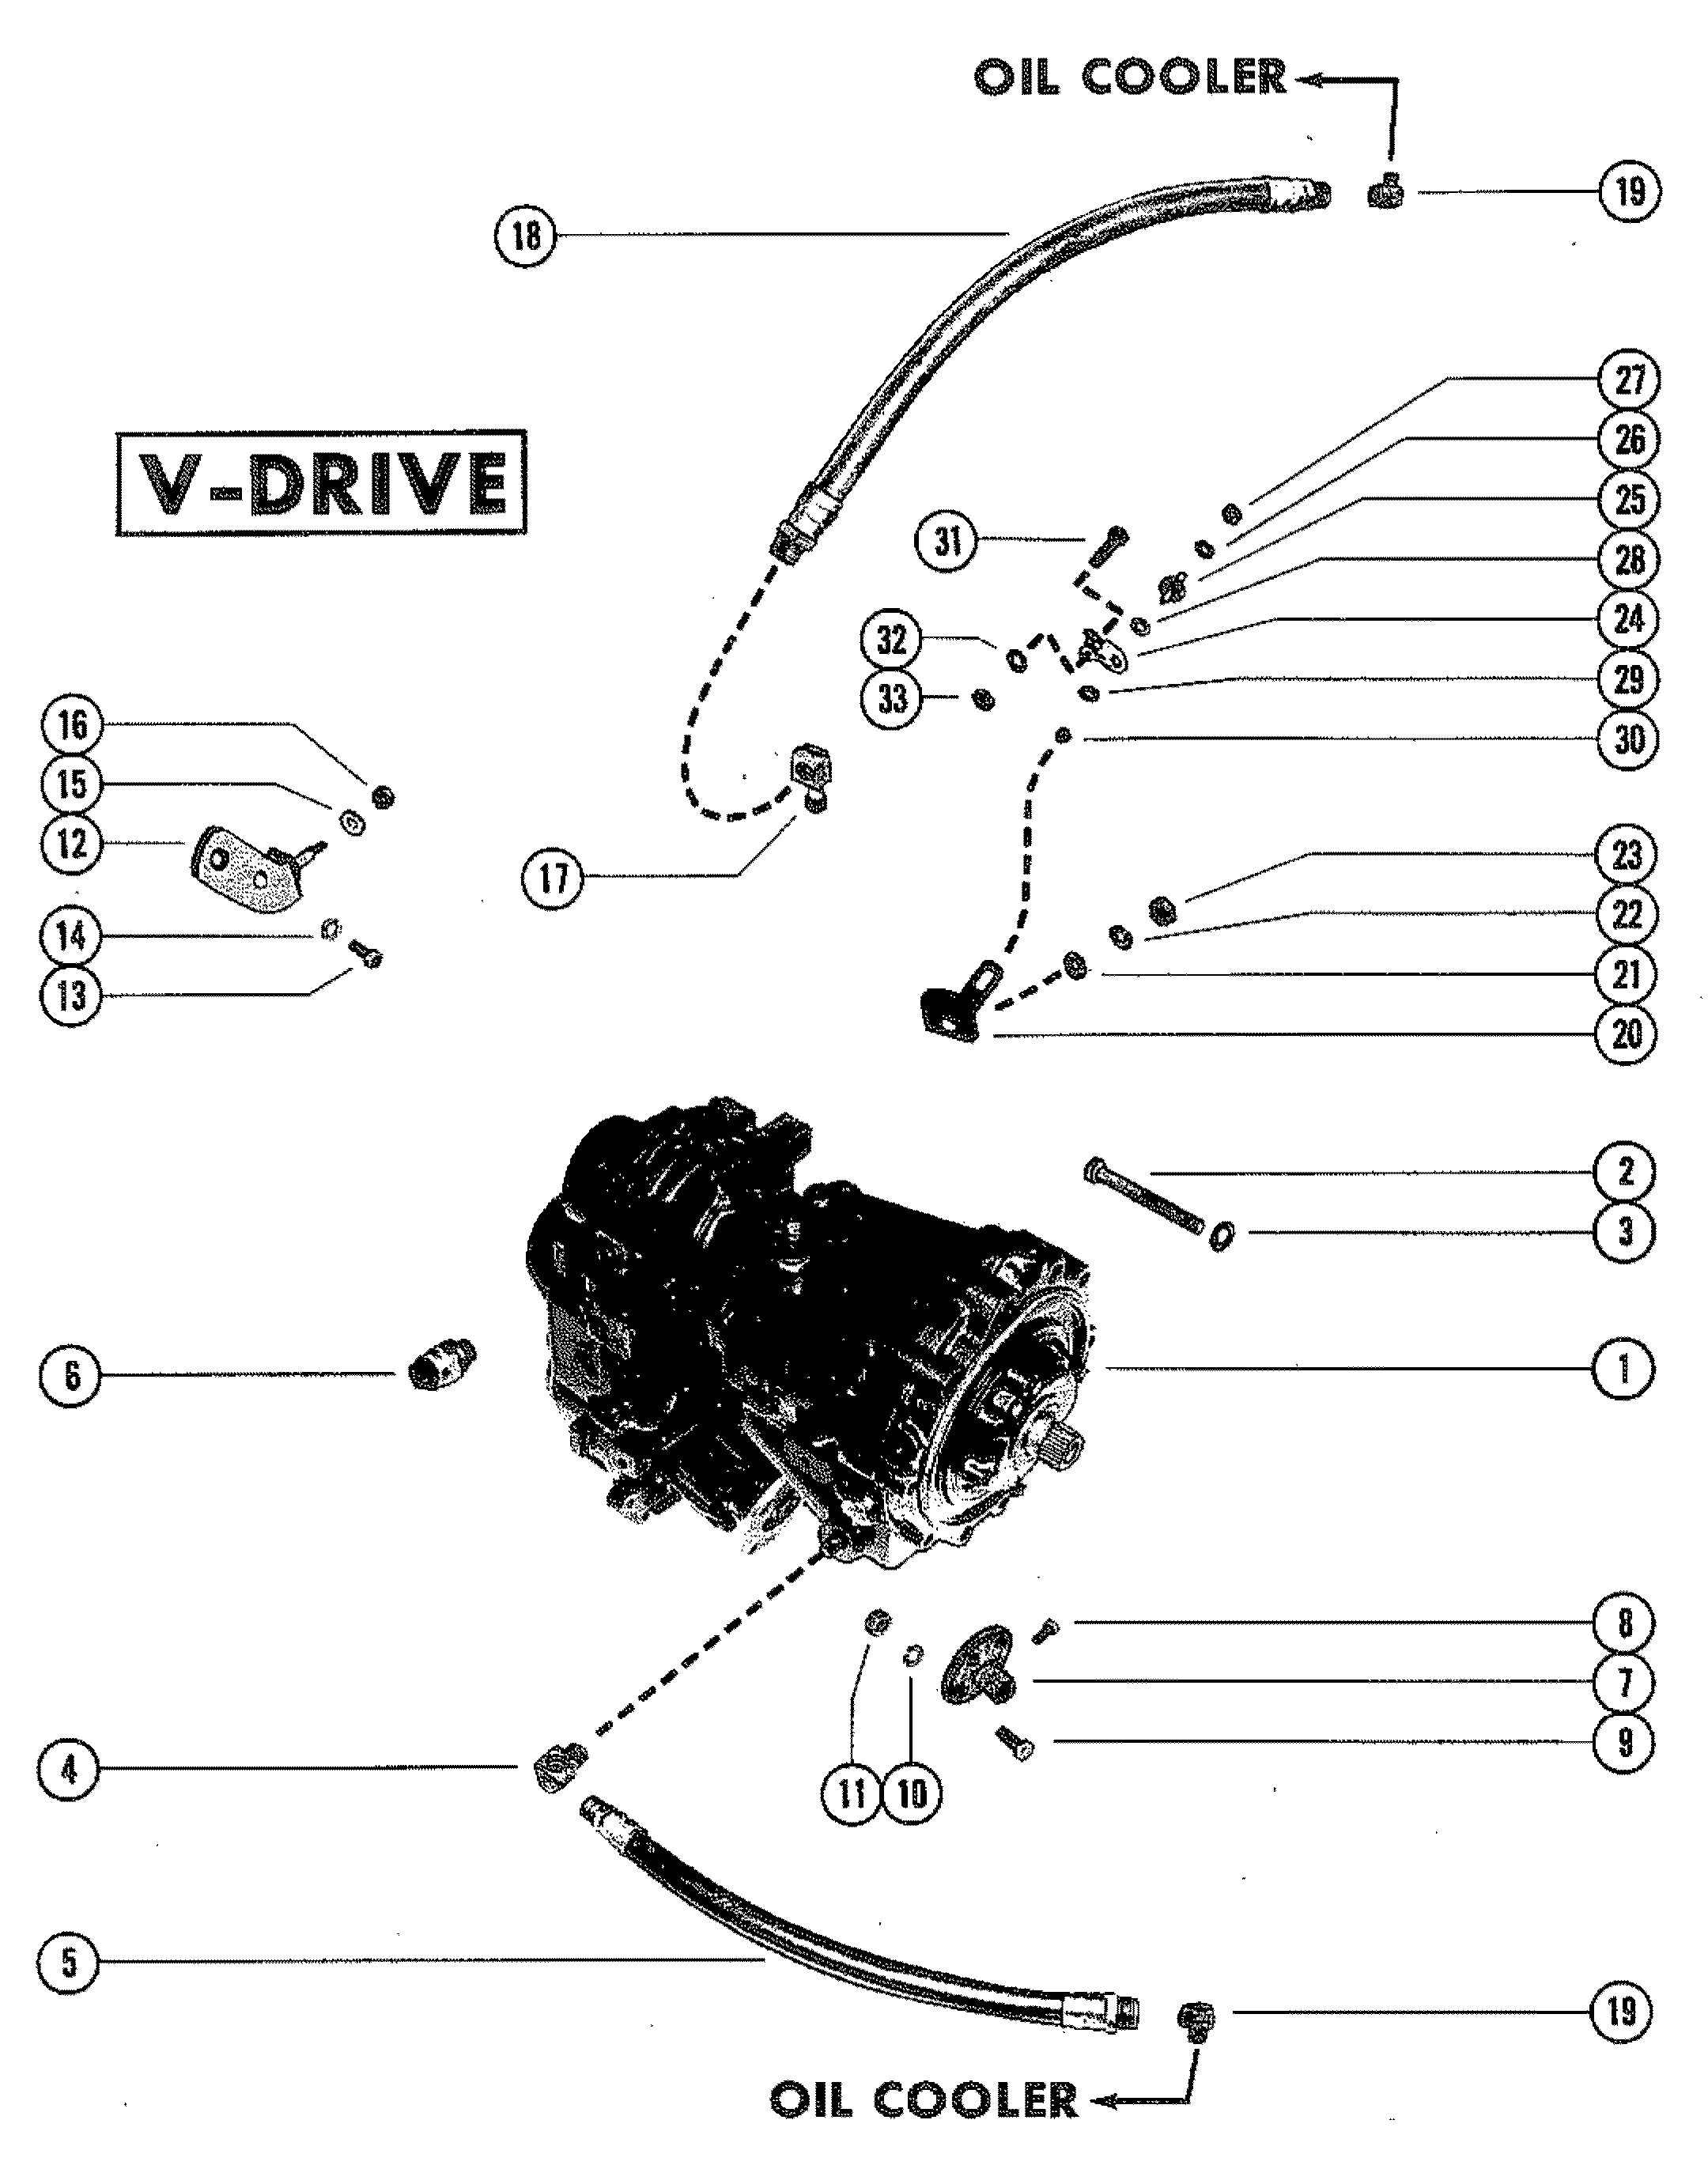 TRANSMISSION AND RELATED PARTS V-DRIVE FOR MERCRUISER 898